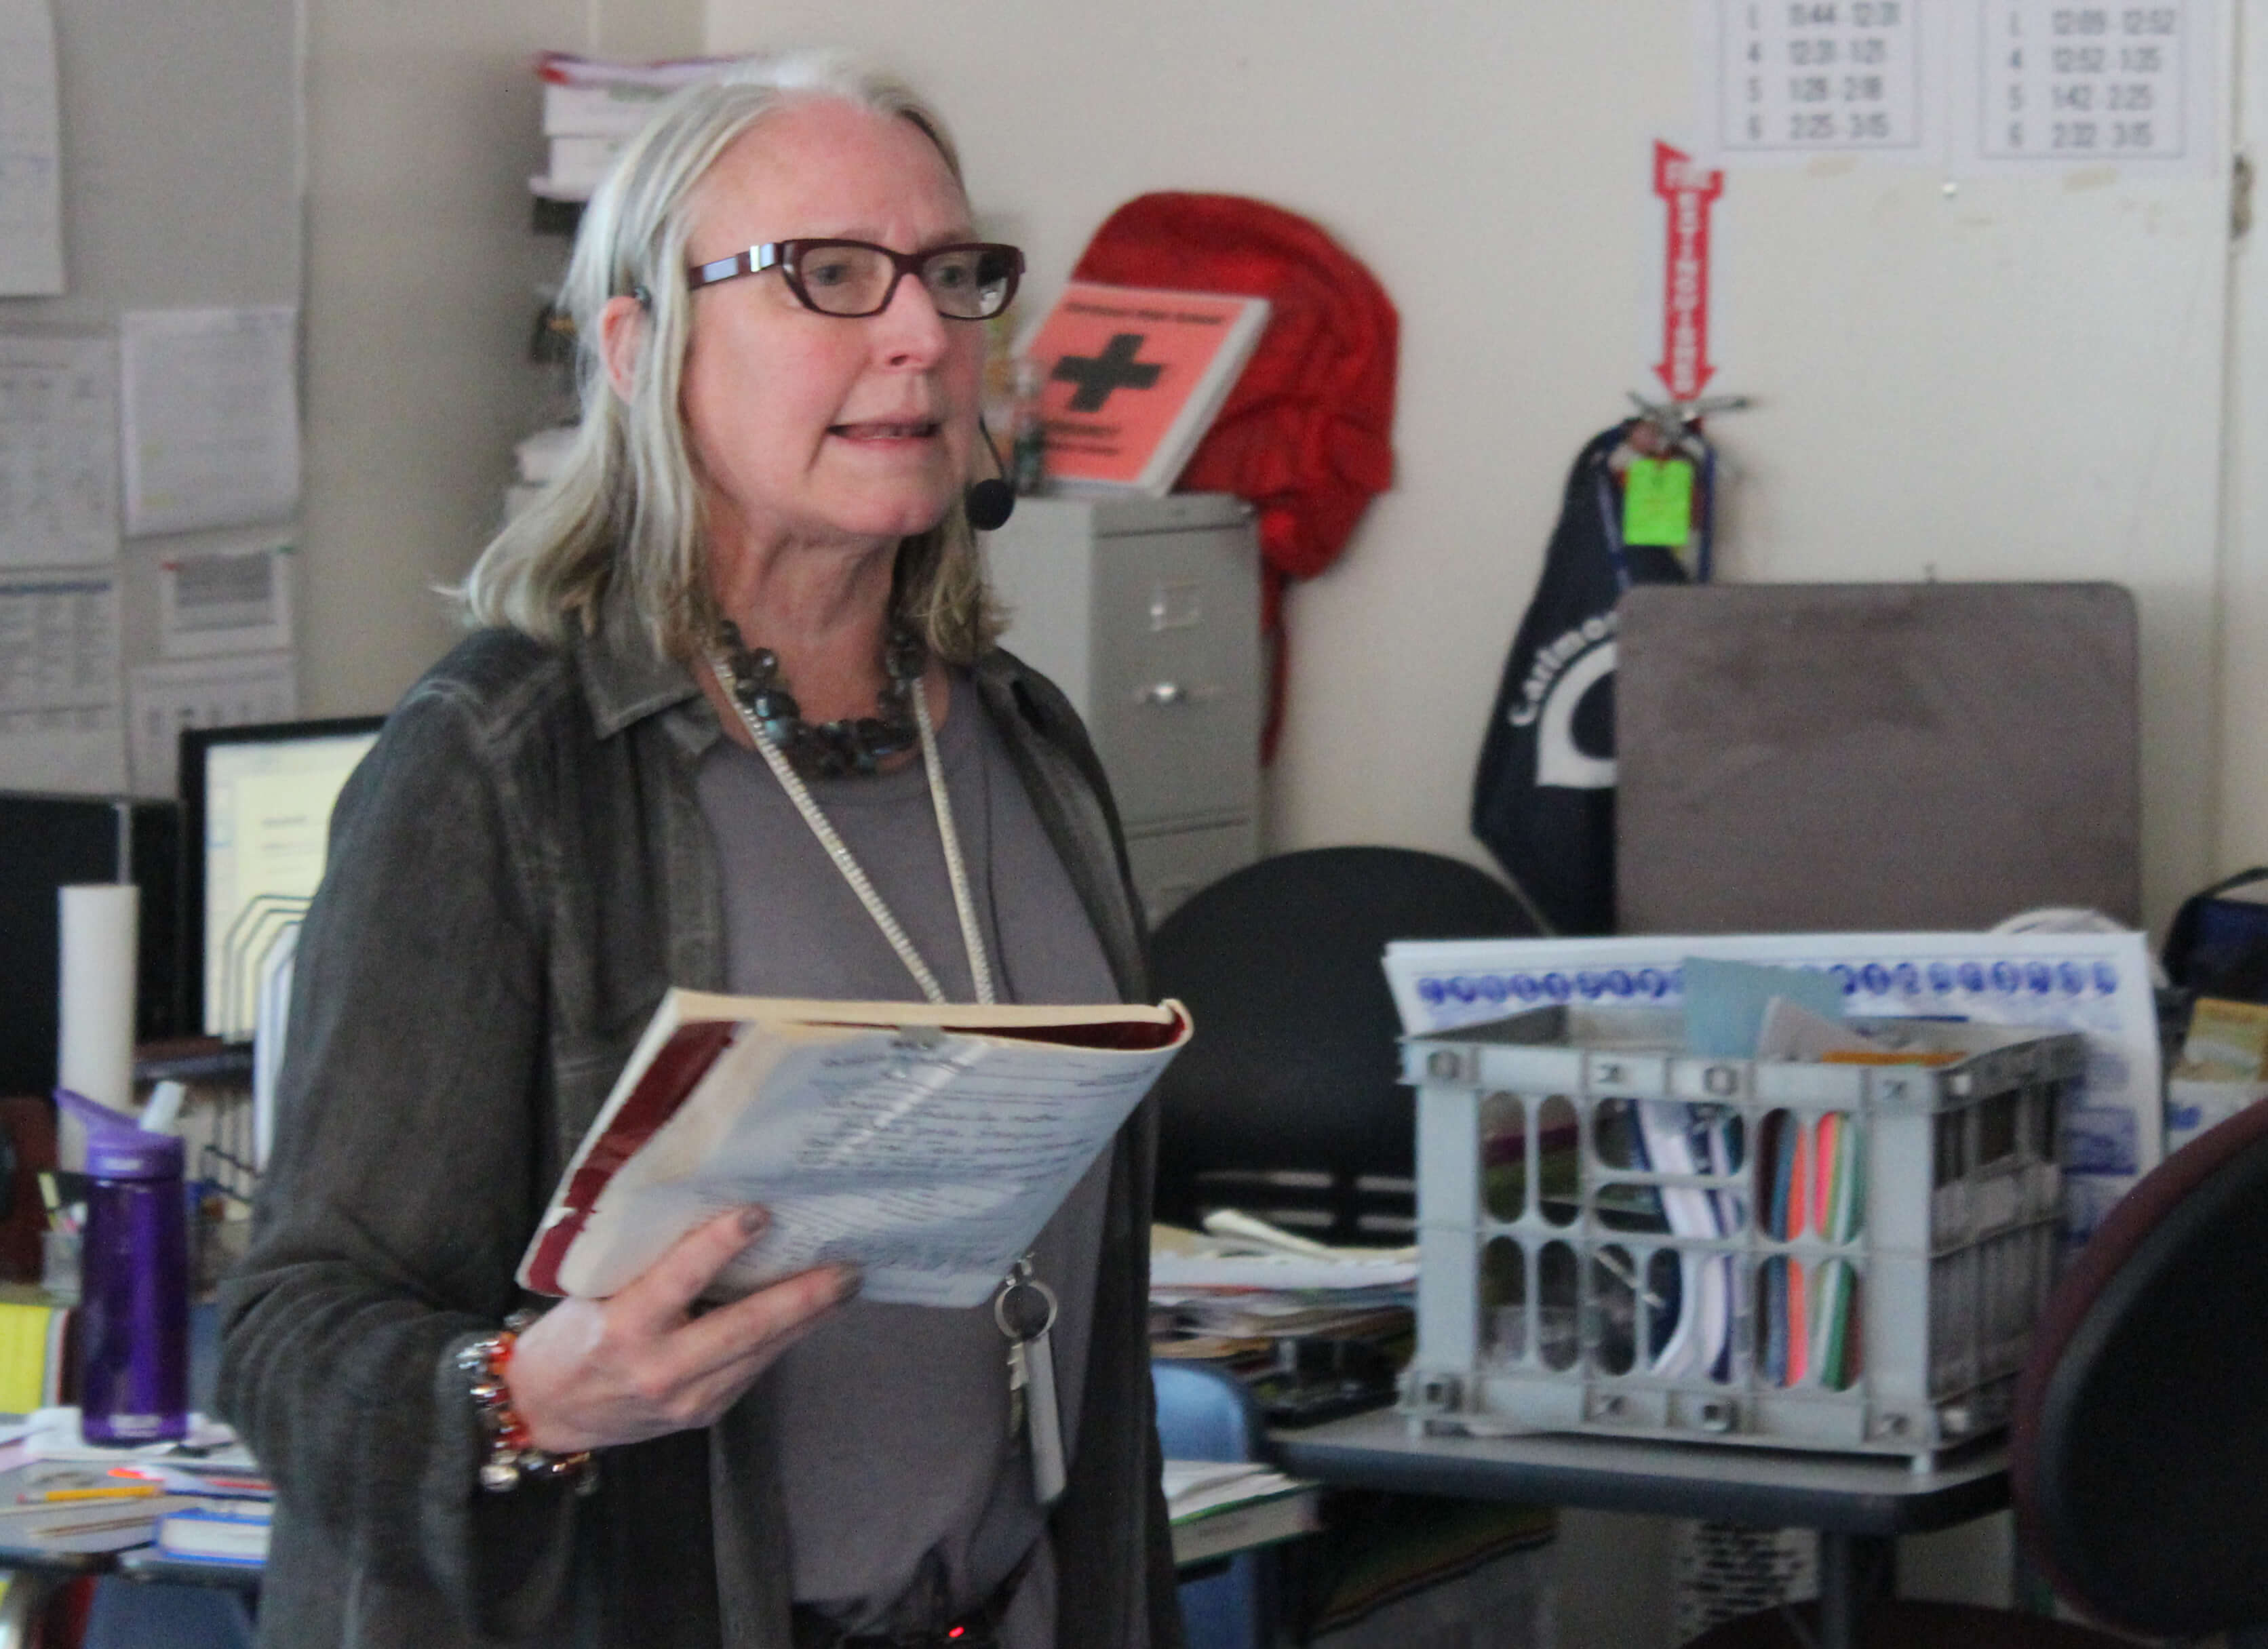 Foreign language teacher Roberta Scott speaks into a microphone when she teaches in order to project her voice over the sound produced by the construction outside of her classroom.